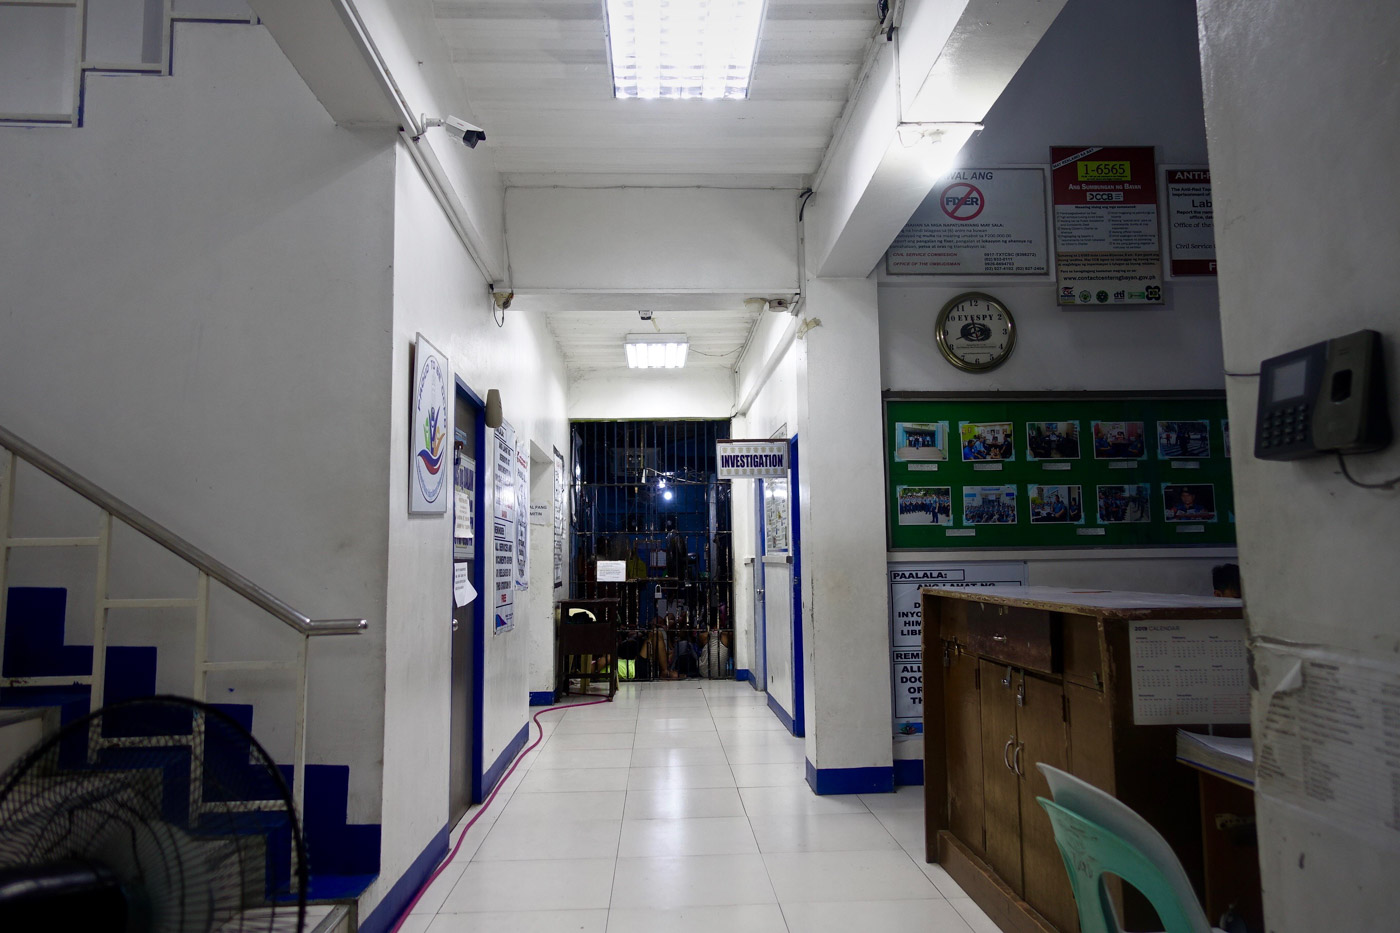 ADULTS ACROSS. The detention facility of the Batasan police station is just across the hall from the women and children protection desk. Photo by Rambo Talabong/Rappler